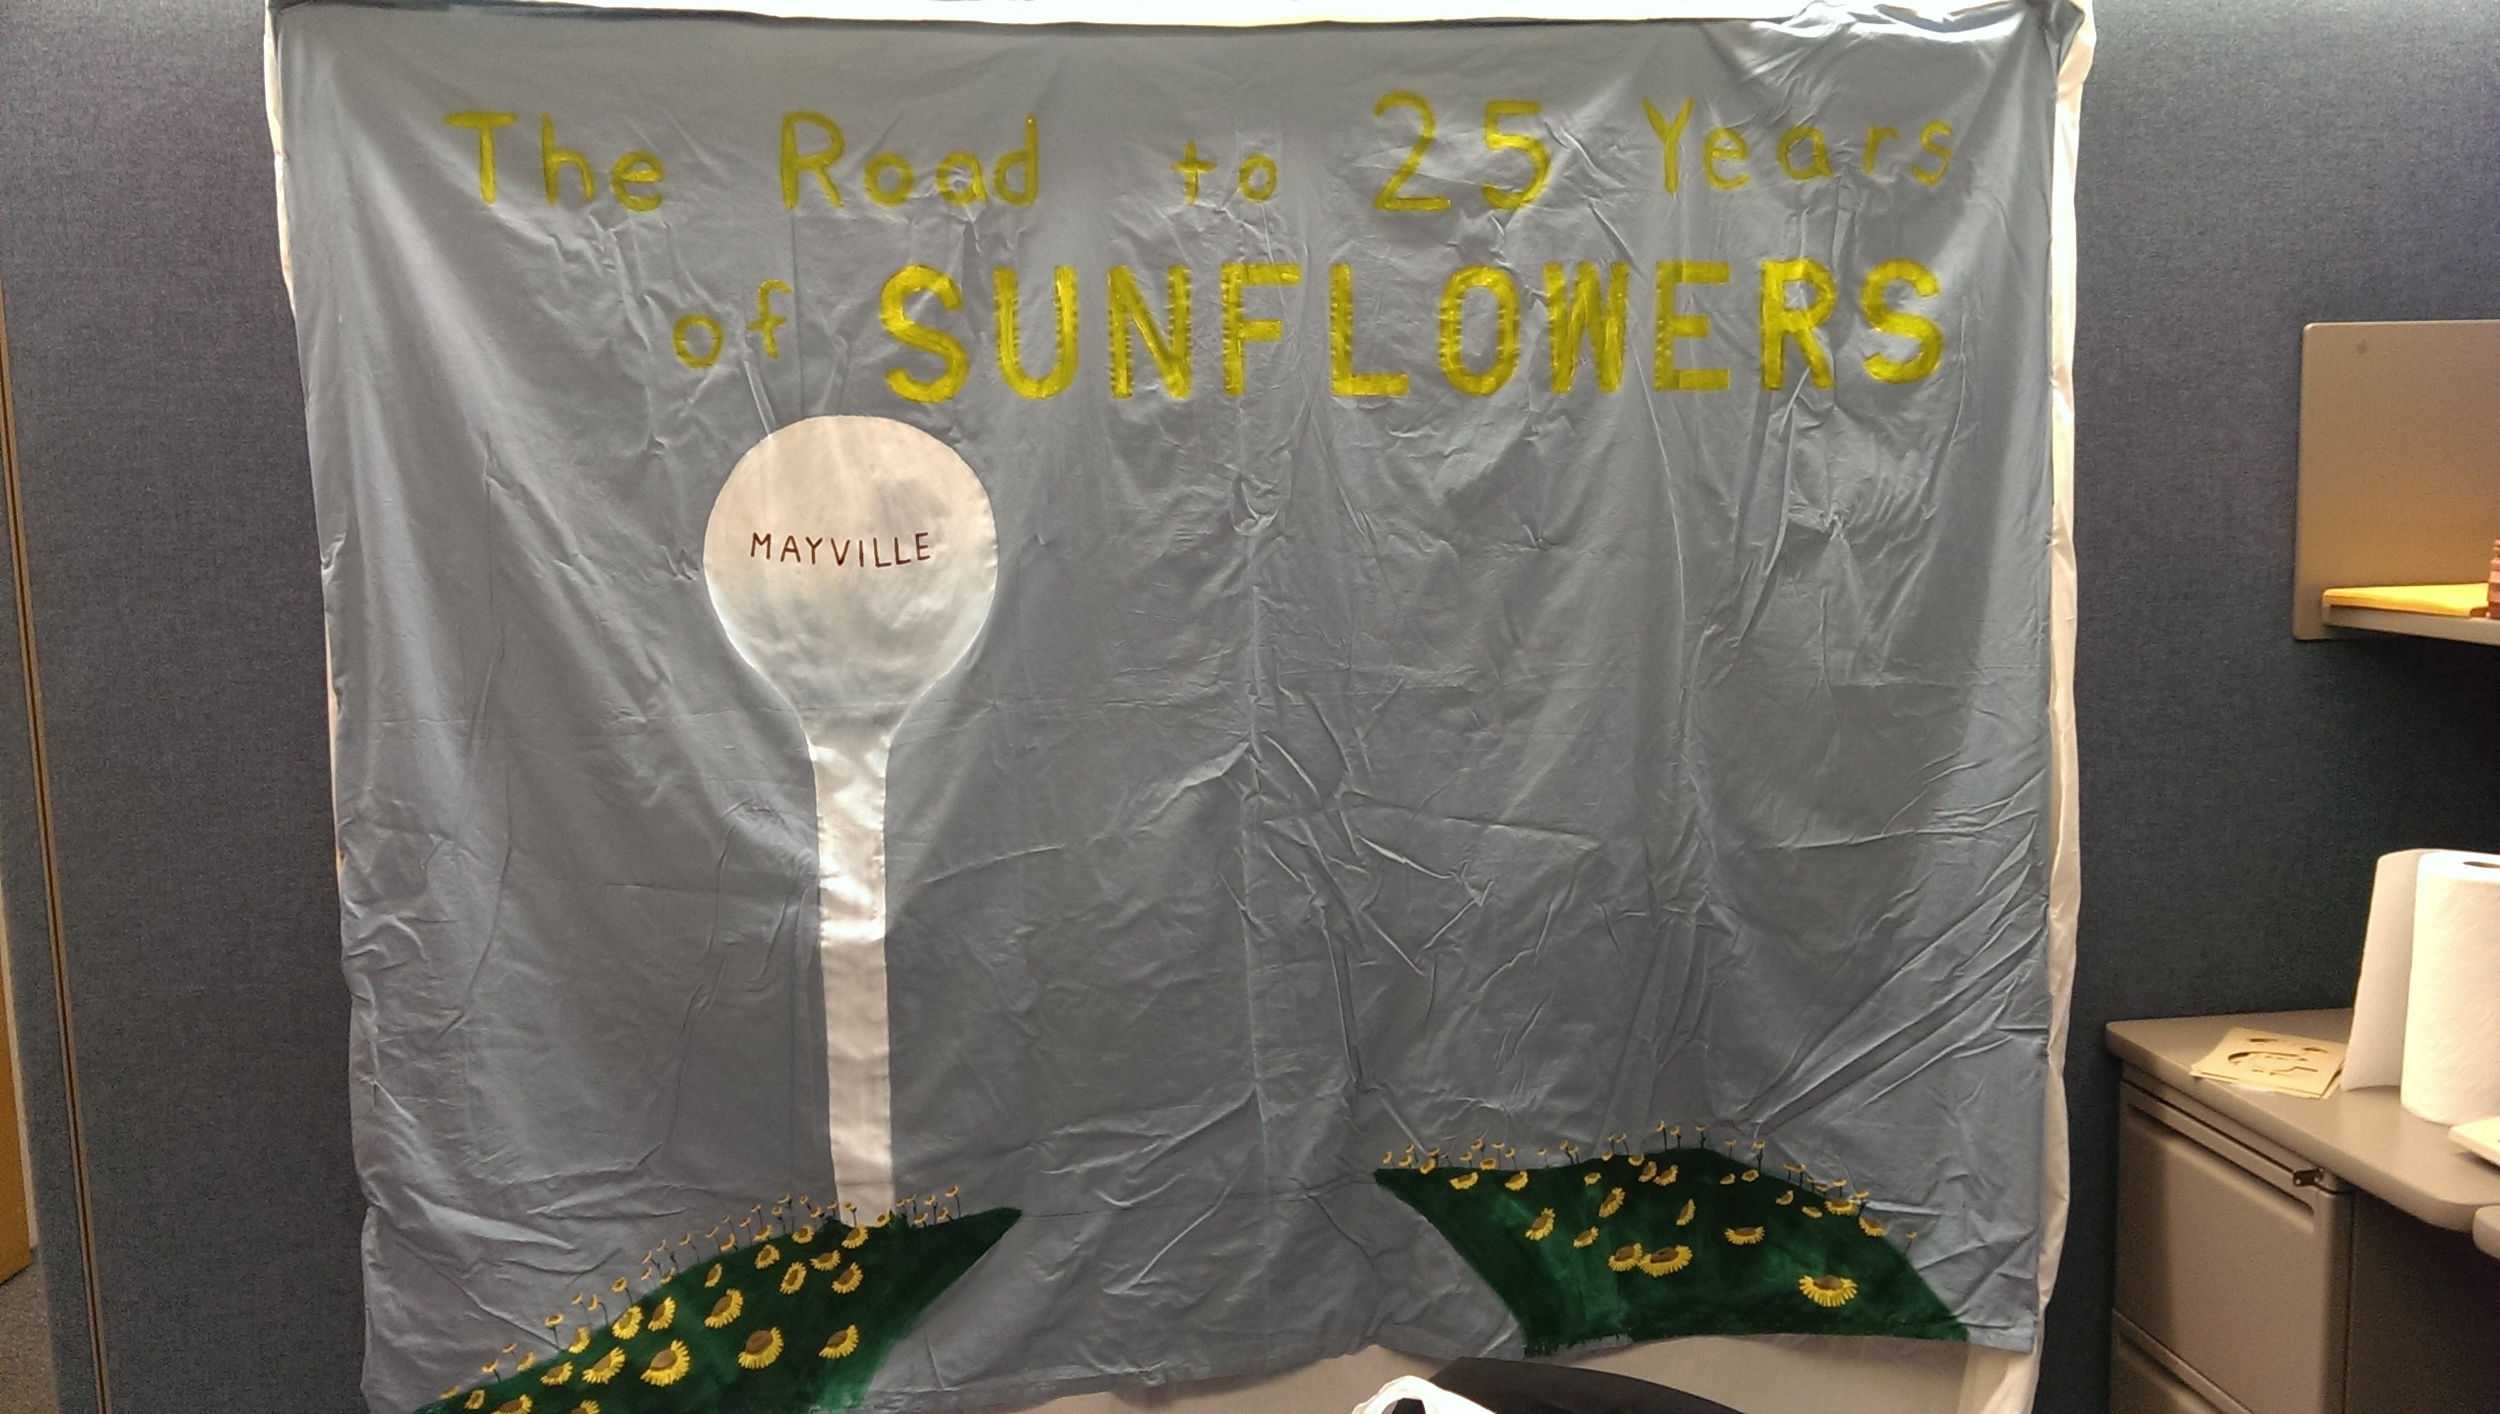 The finished backdrop.